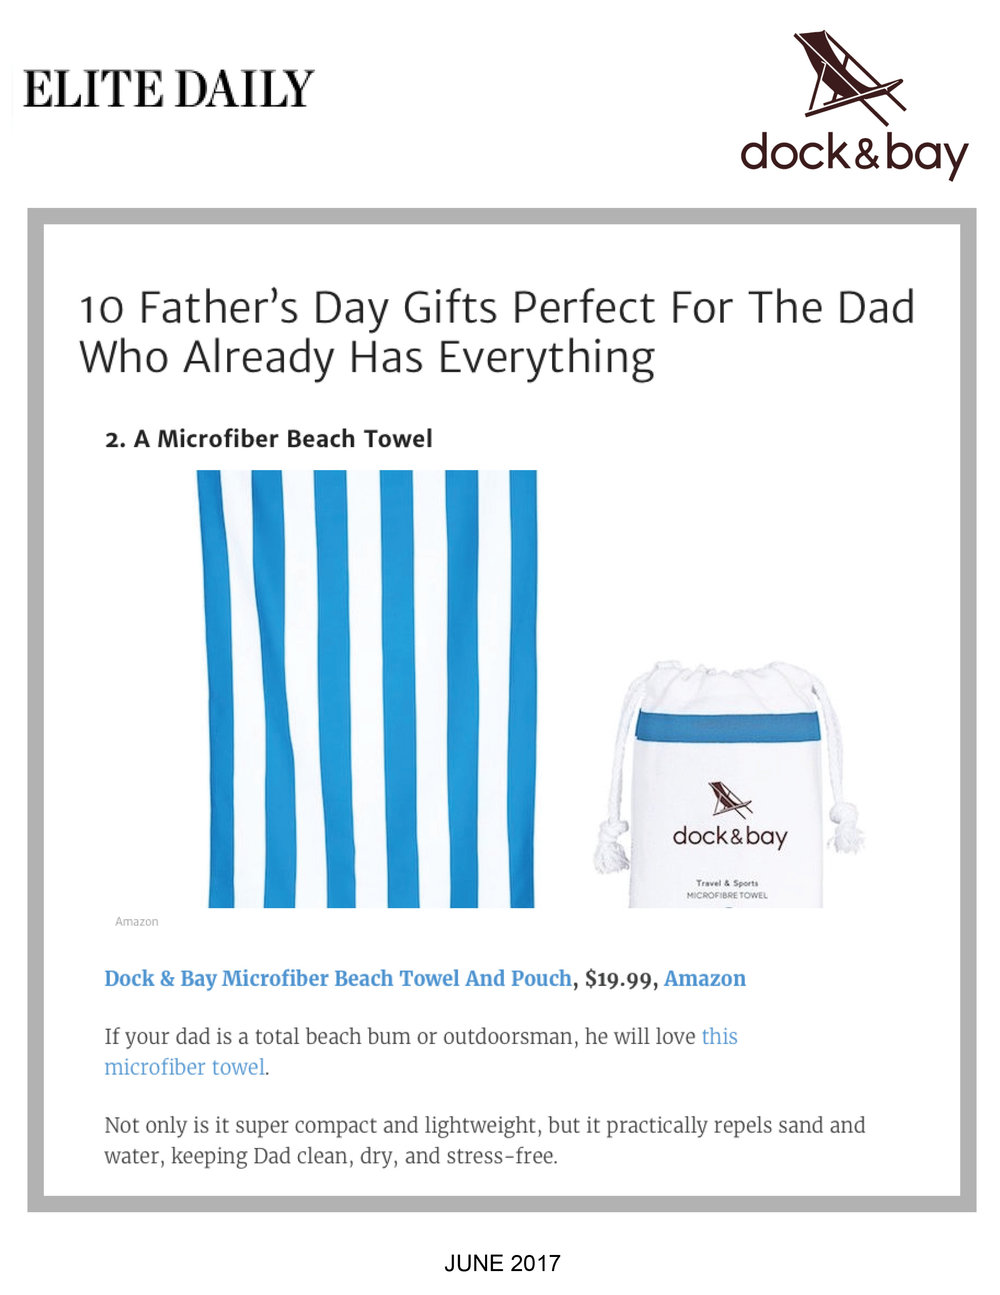 Dock&Bay_EliteDaily_June2017.jpg